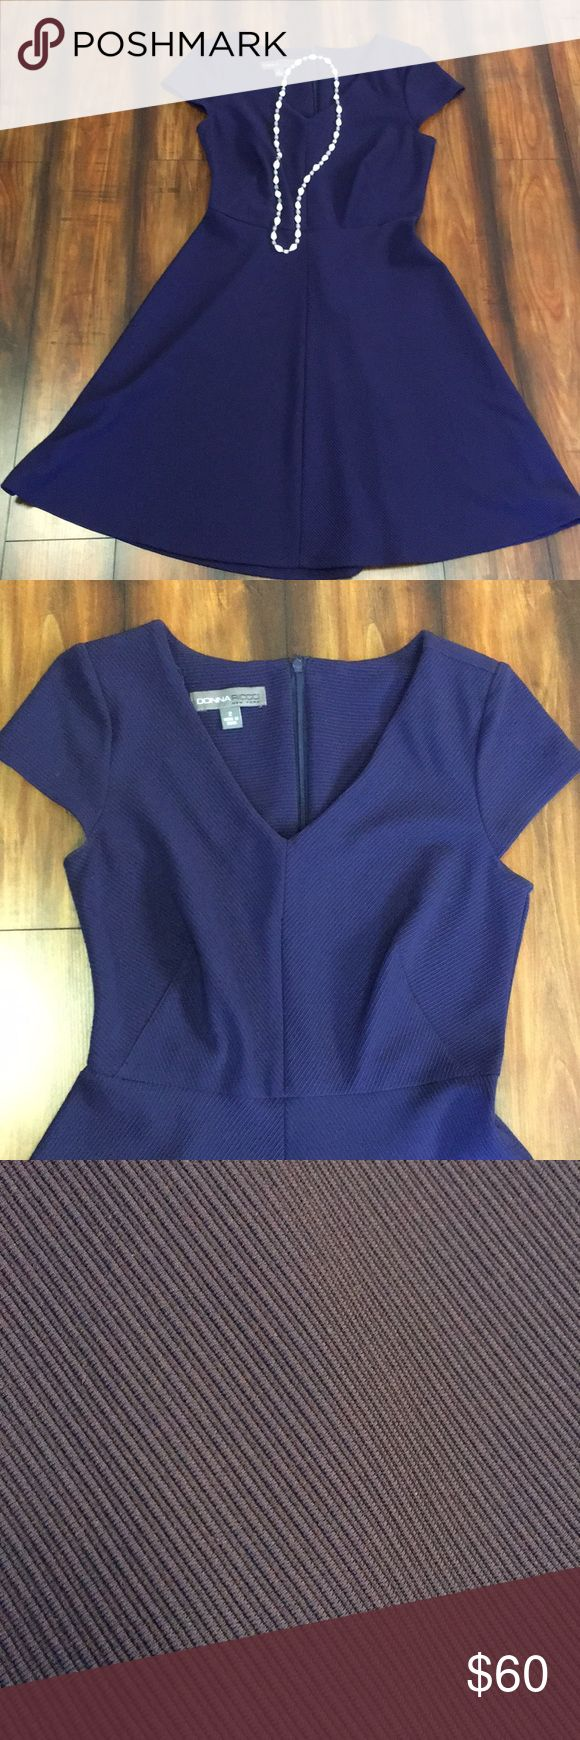 Donna Ricco dress EUC. Please see pics. Purple blue color. Beautiful. Soft ribbed material. Donna Ricco Dresses